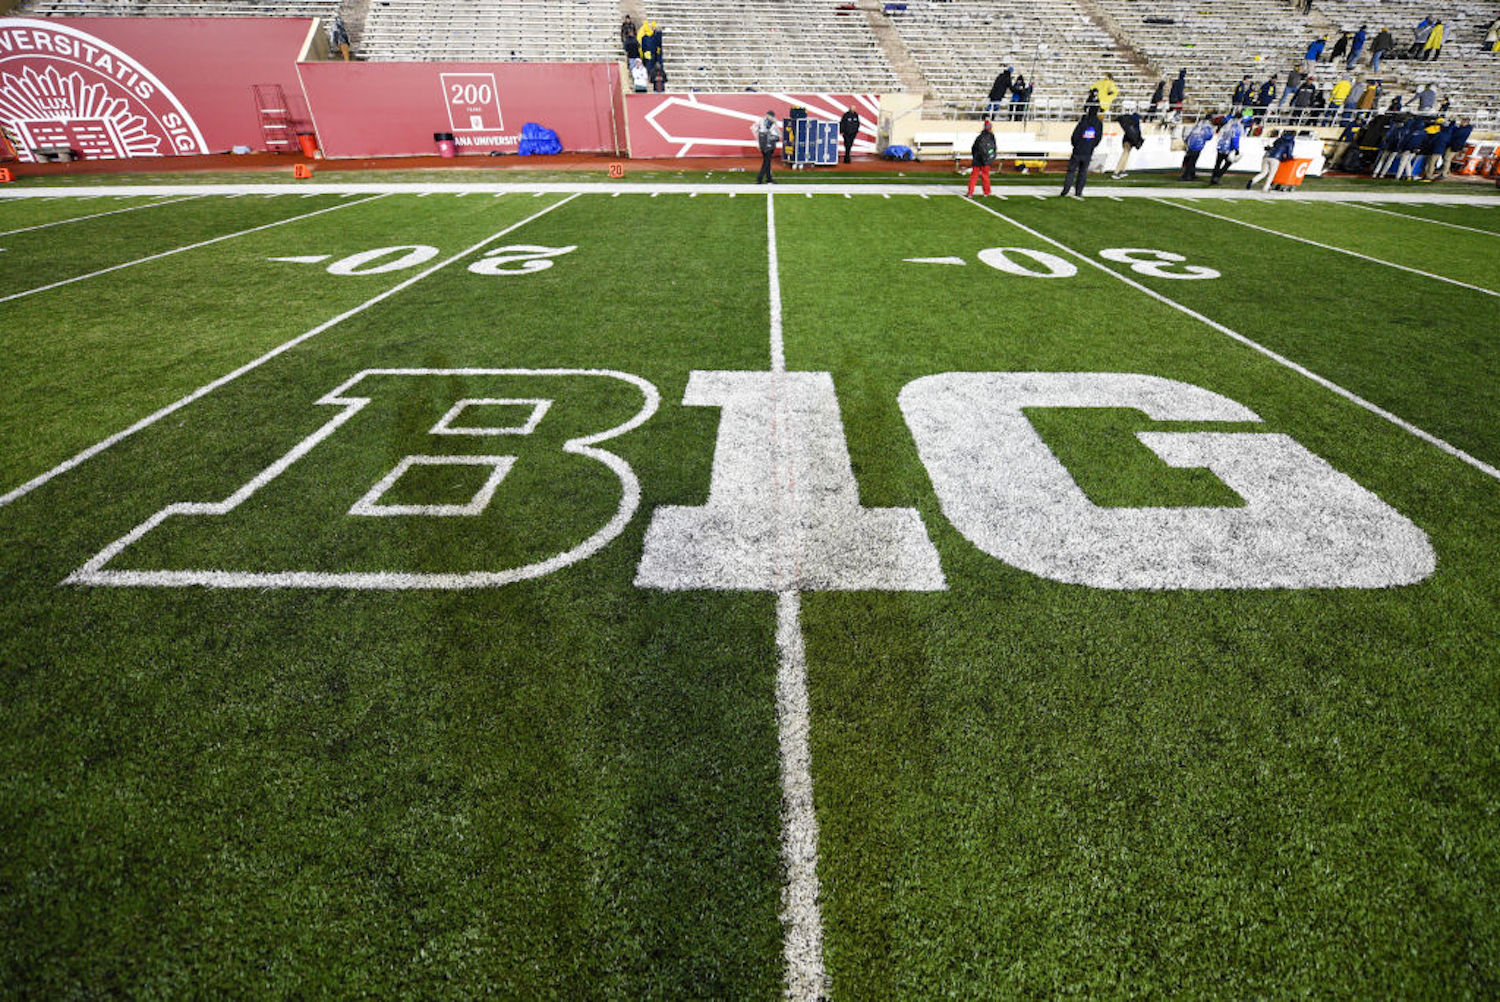 The Big Ten announced it won't be playing college football in 2020, but Donald Trump might've just convinced the conference to reconsider.